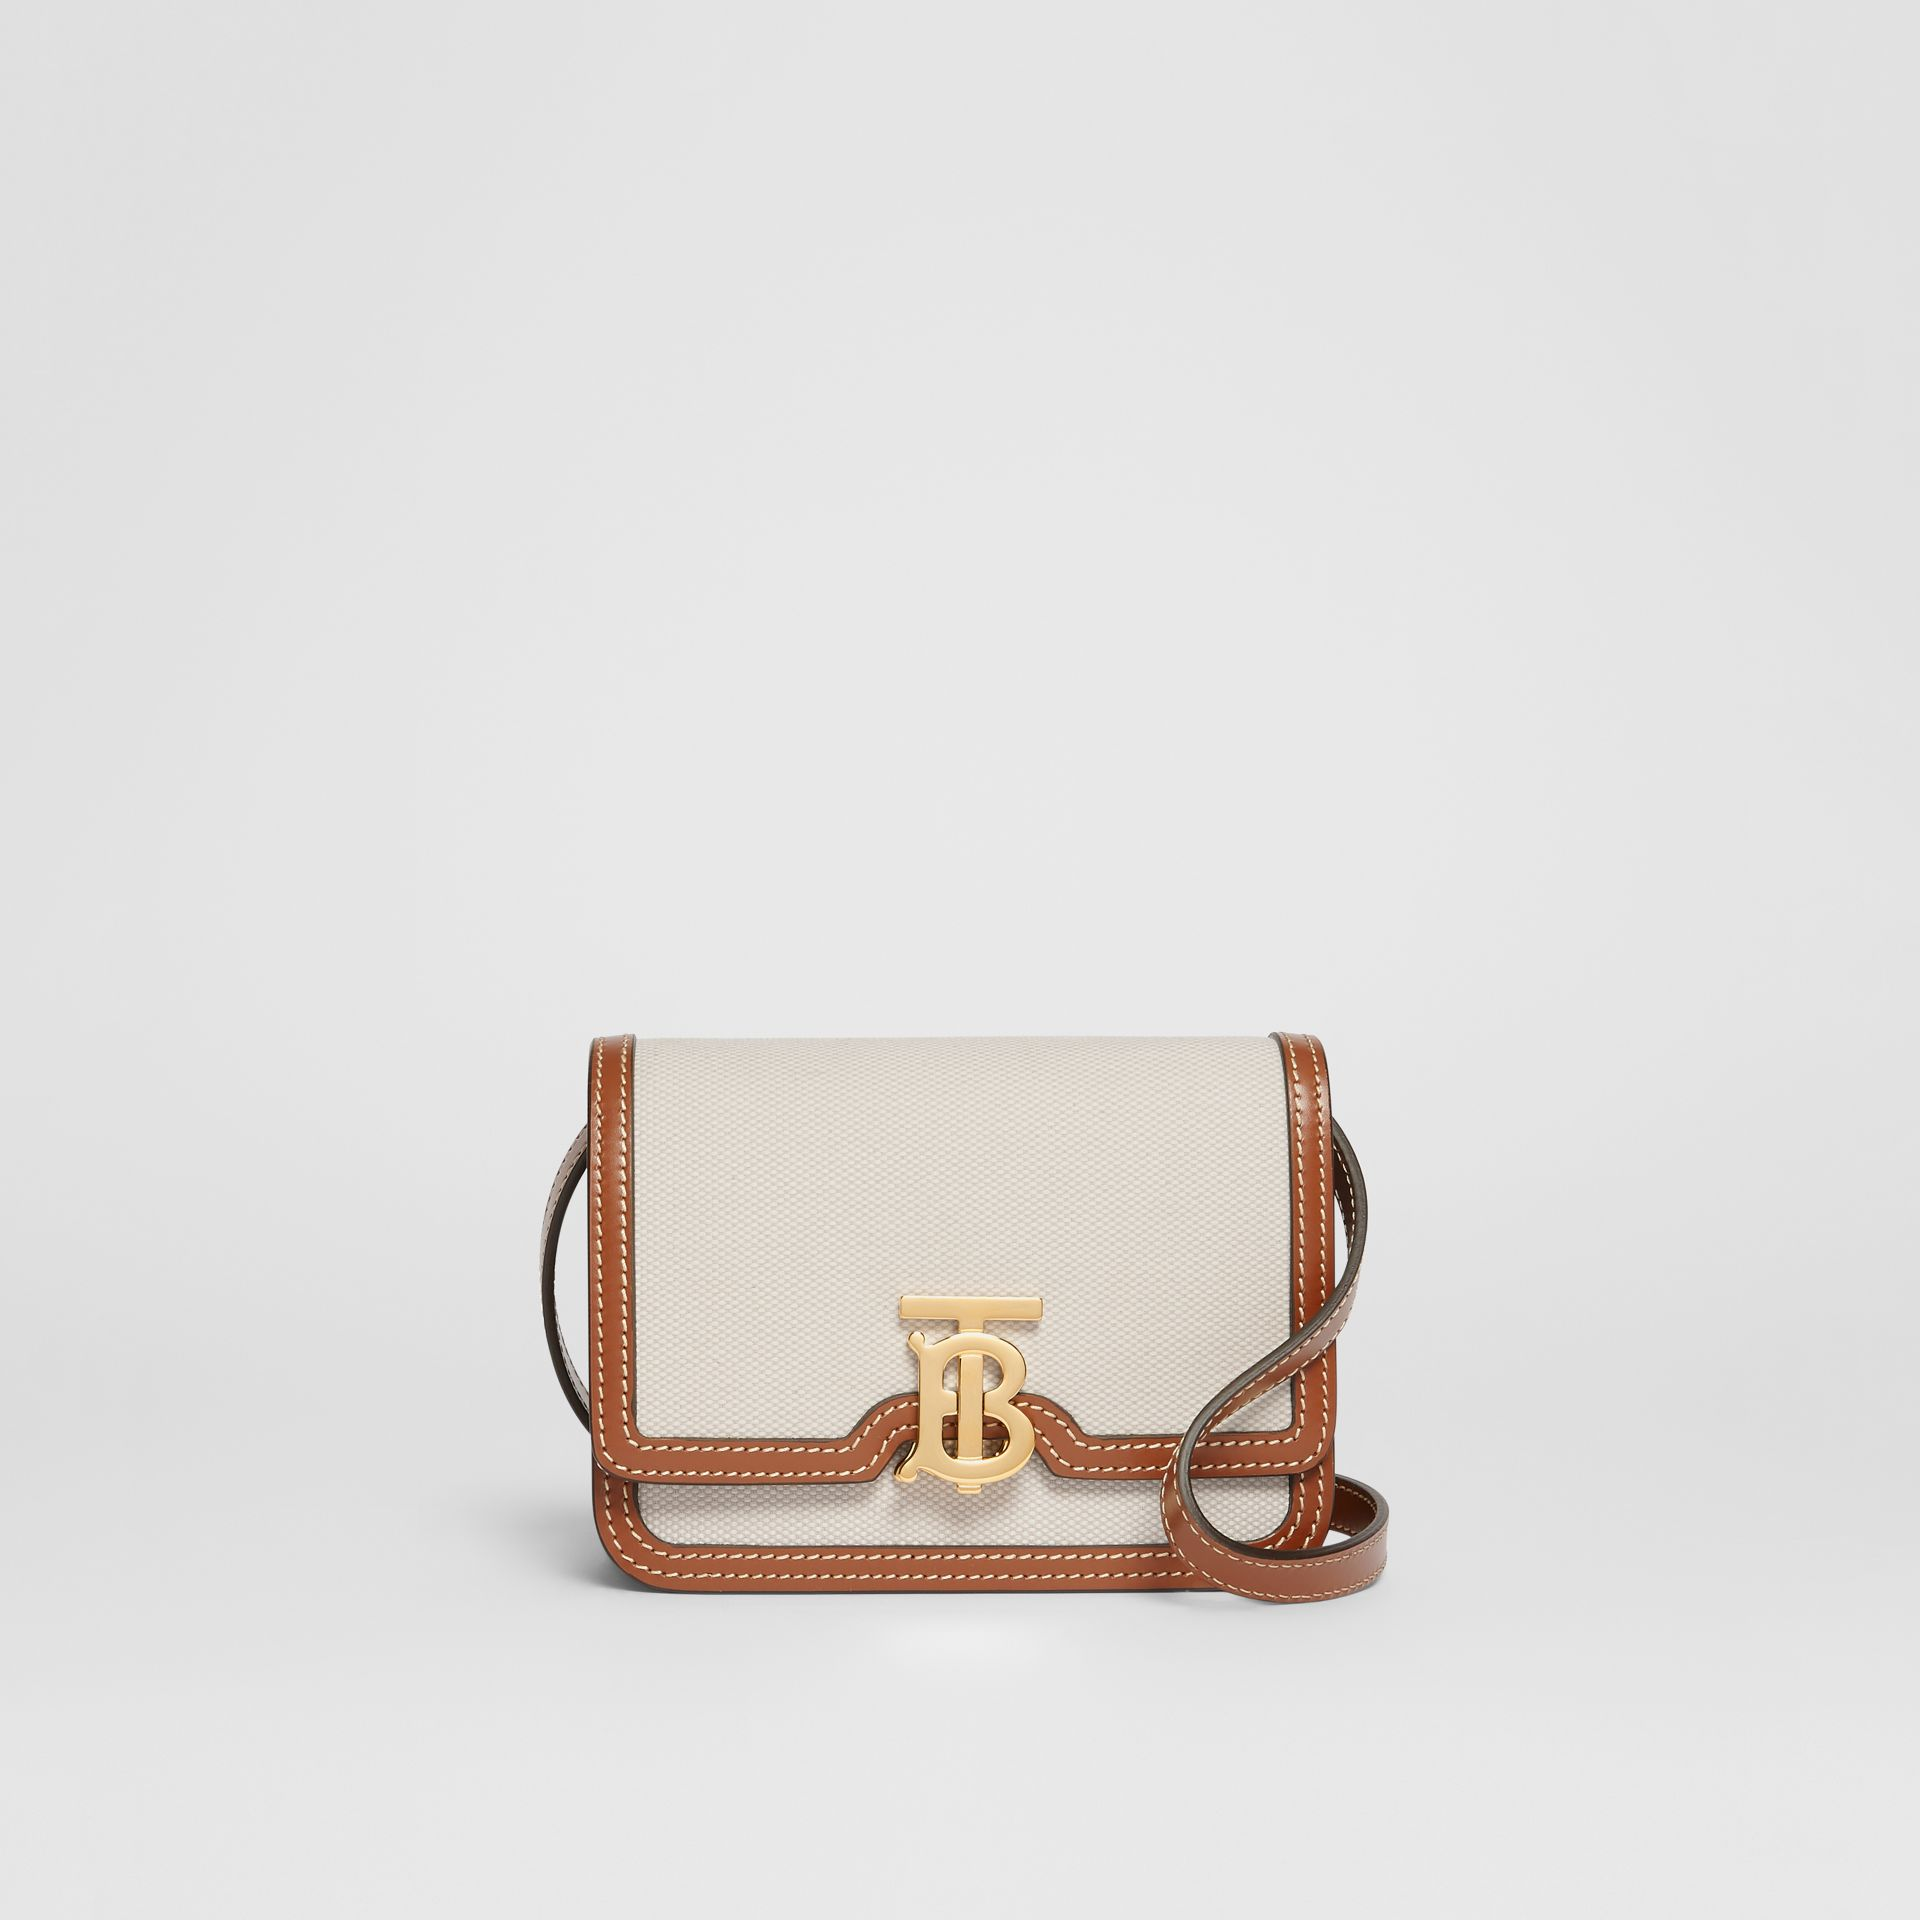 Mini Two-tone Canvas and Leather TB Bag in Natural/malt Brown - Women | Burberry Hong Kong S.A.R. - gallery image 0